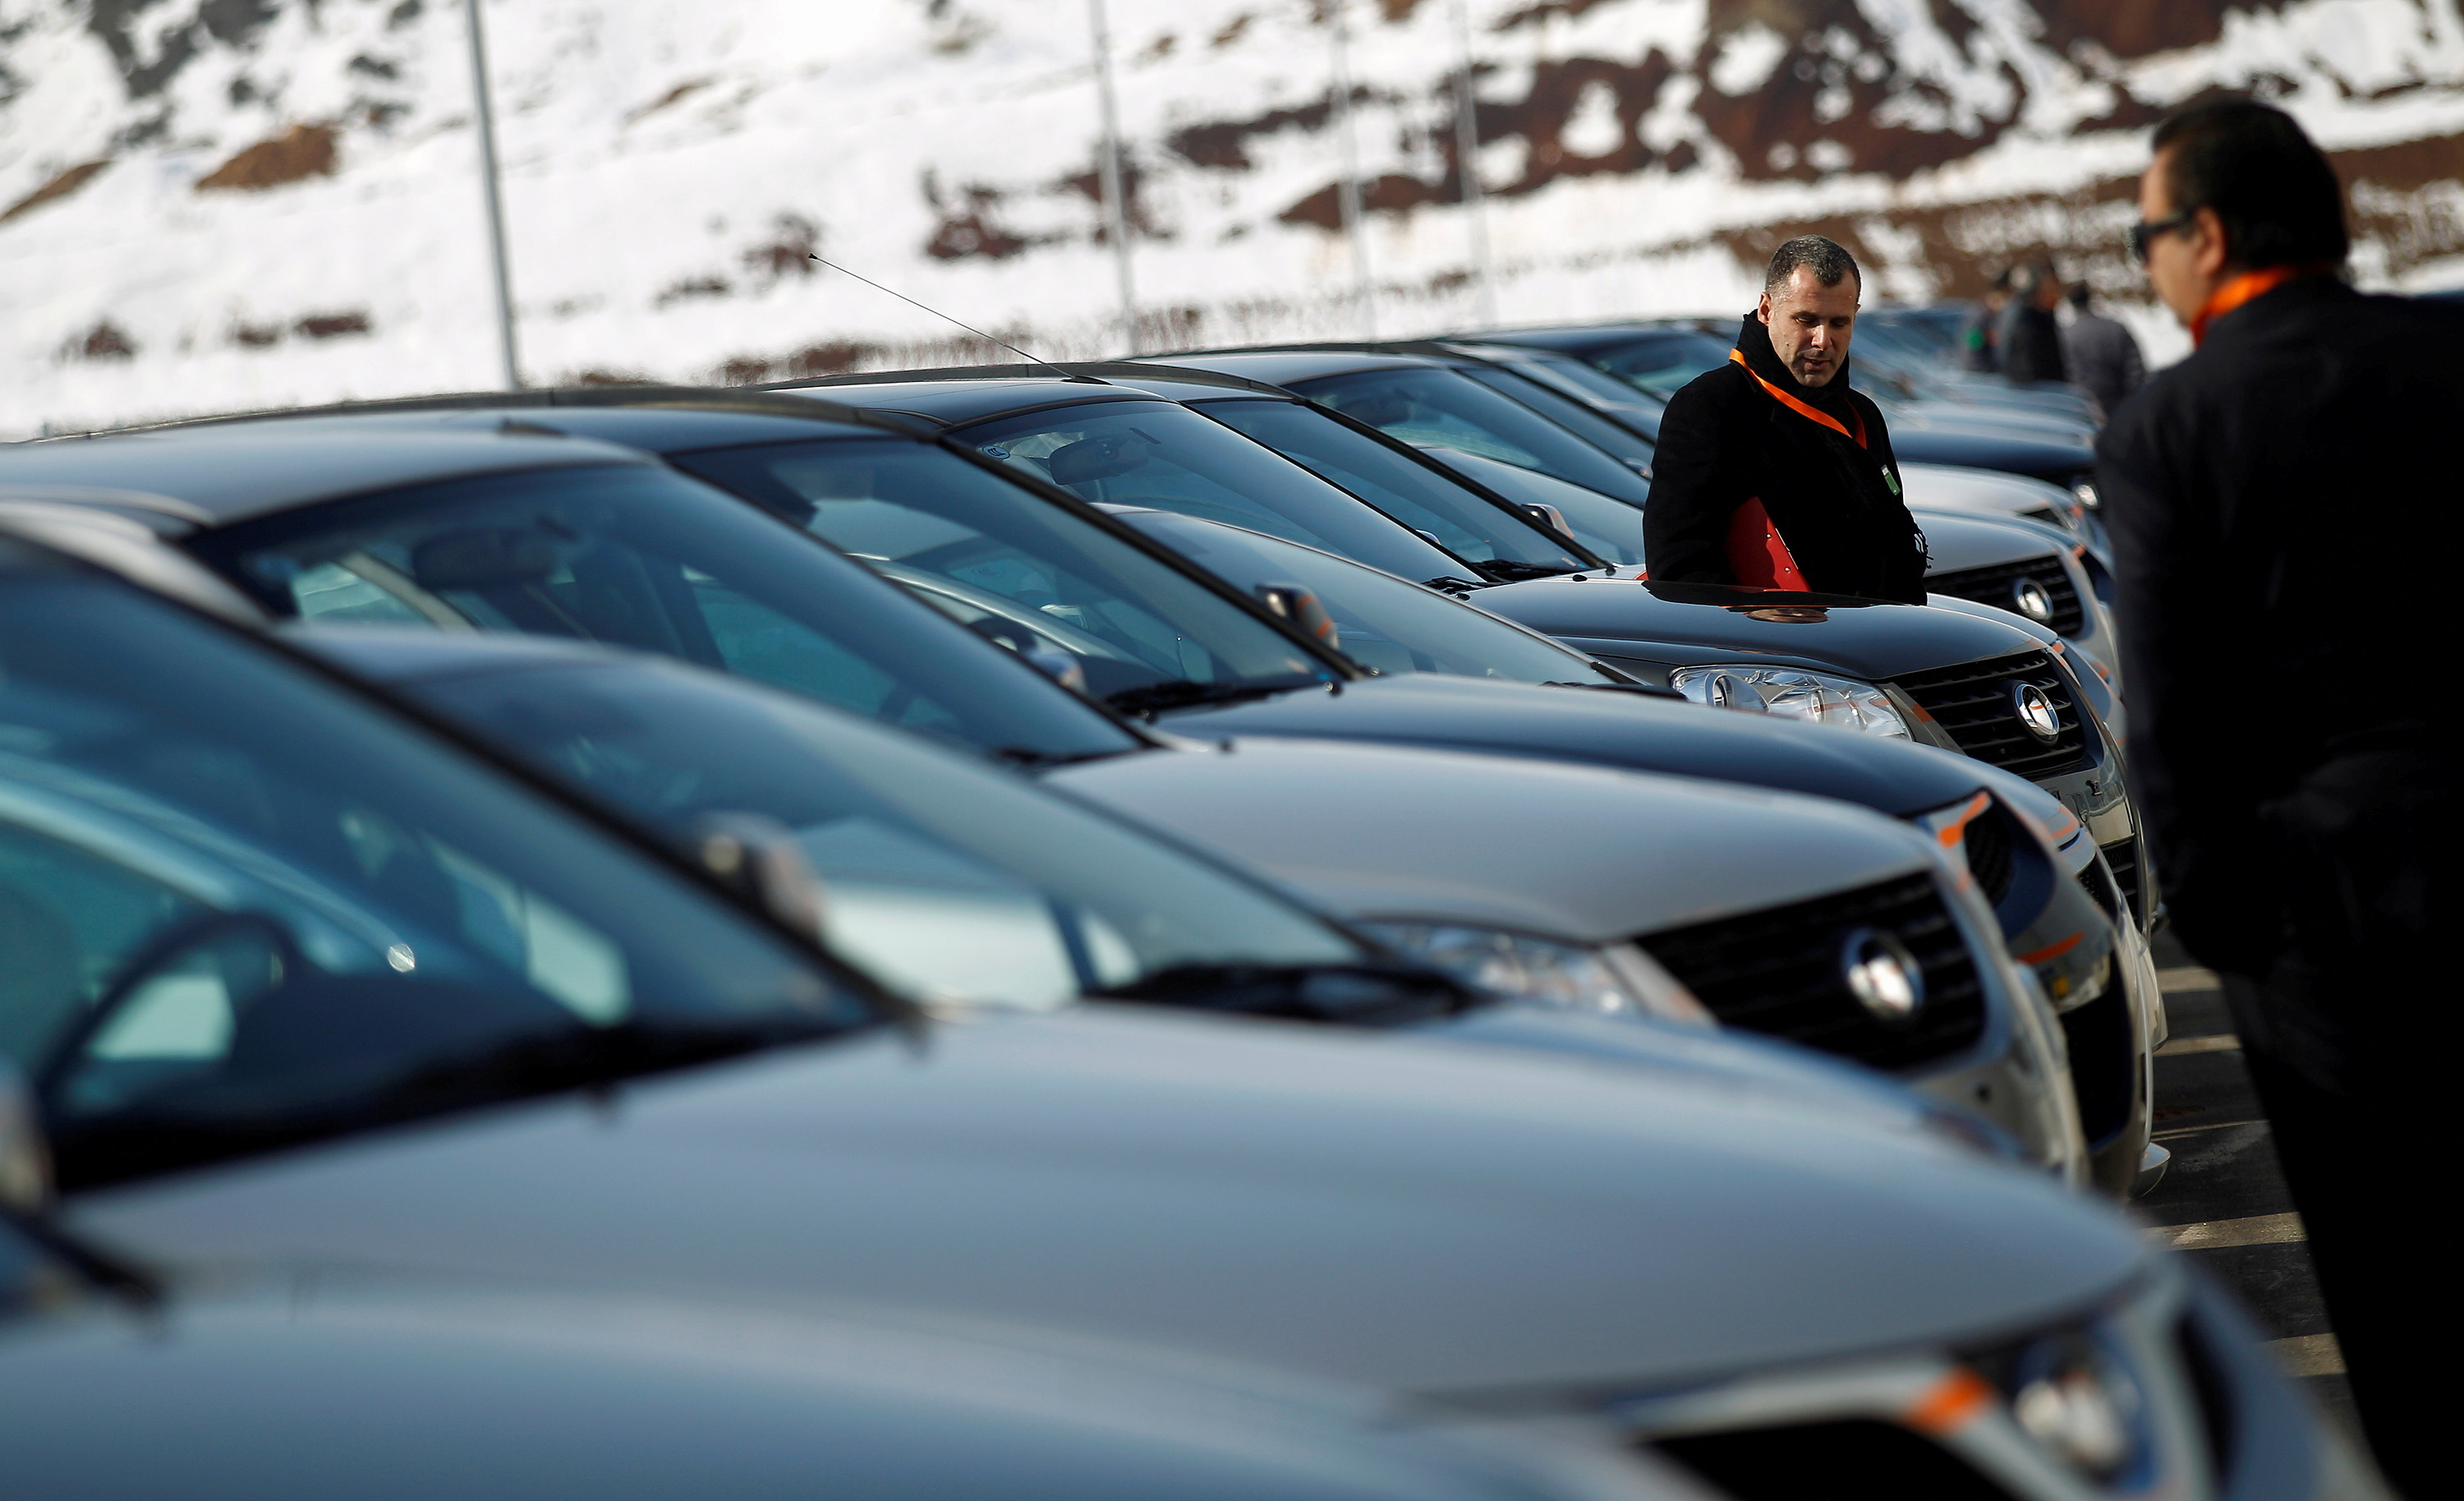 People look at a line of Great Wall cars parked in front of the newly opened car factory of Great Wall Motor Co near the town of Lovech, some 150 km (93 miles) north-east of Sofia February 21, 2012. REUTERS/Stoyan Nenov/File Photo